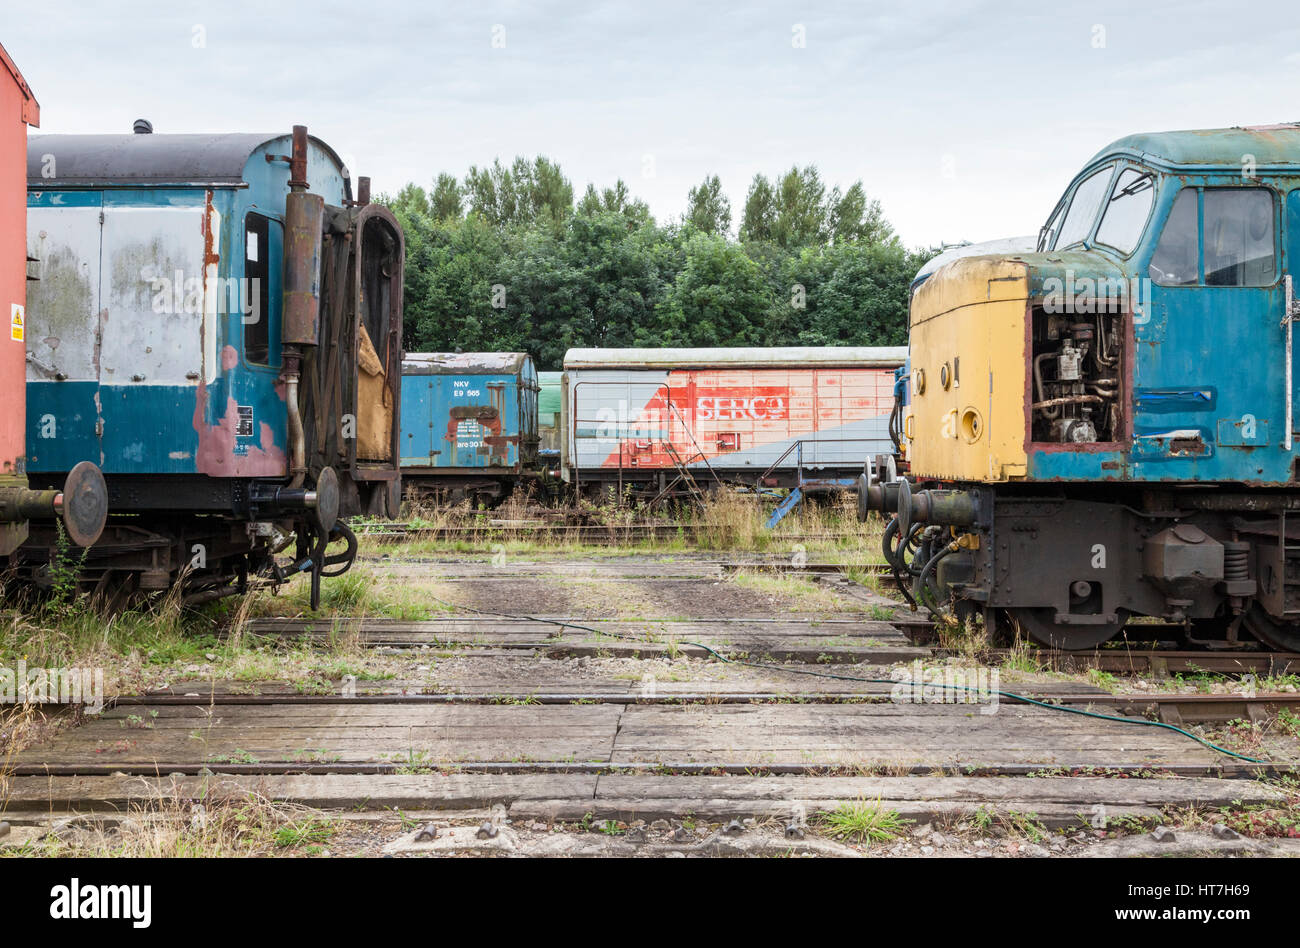 Old rolling stock including a diesel locomotive and railway carriages at Nottingham Transport Heritage Centre, England, - Stock Image